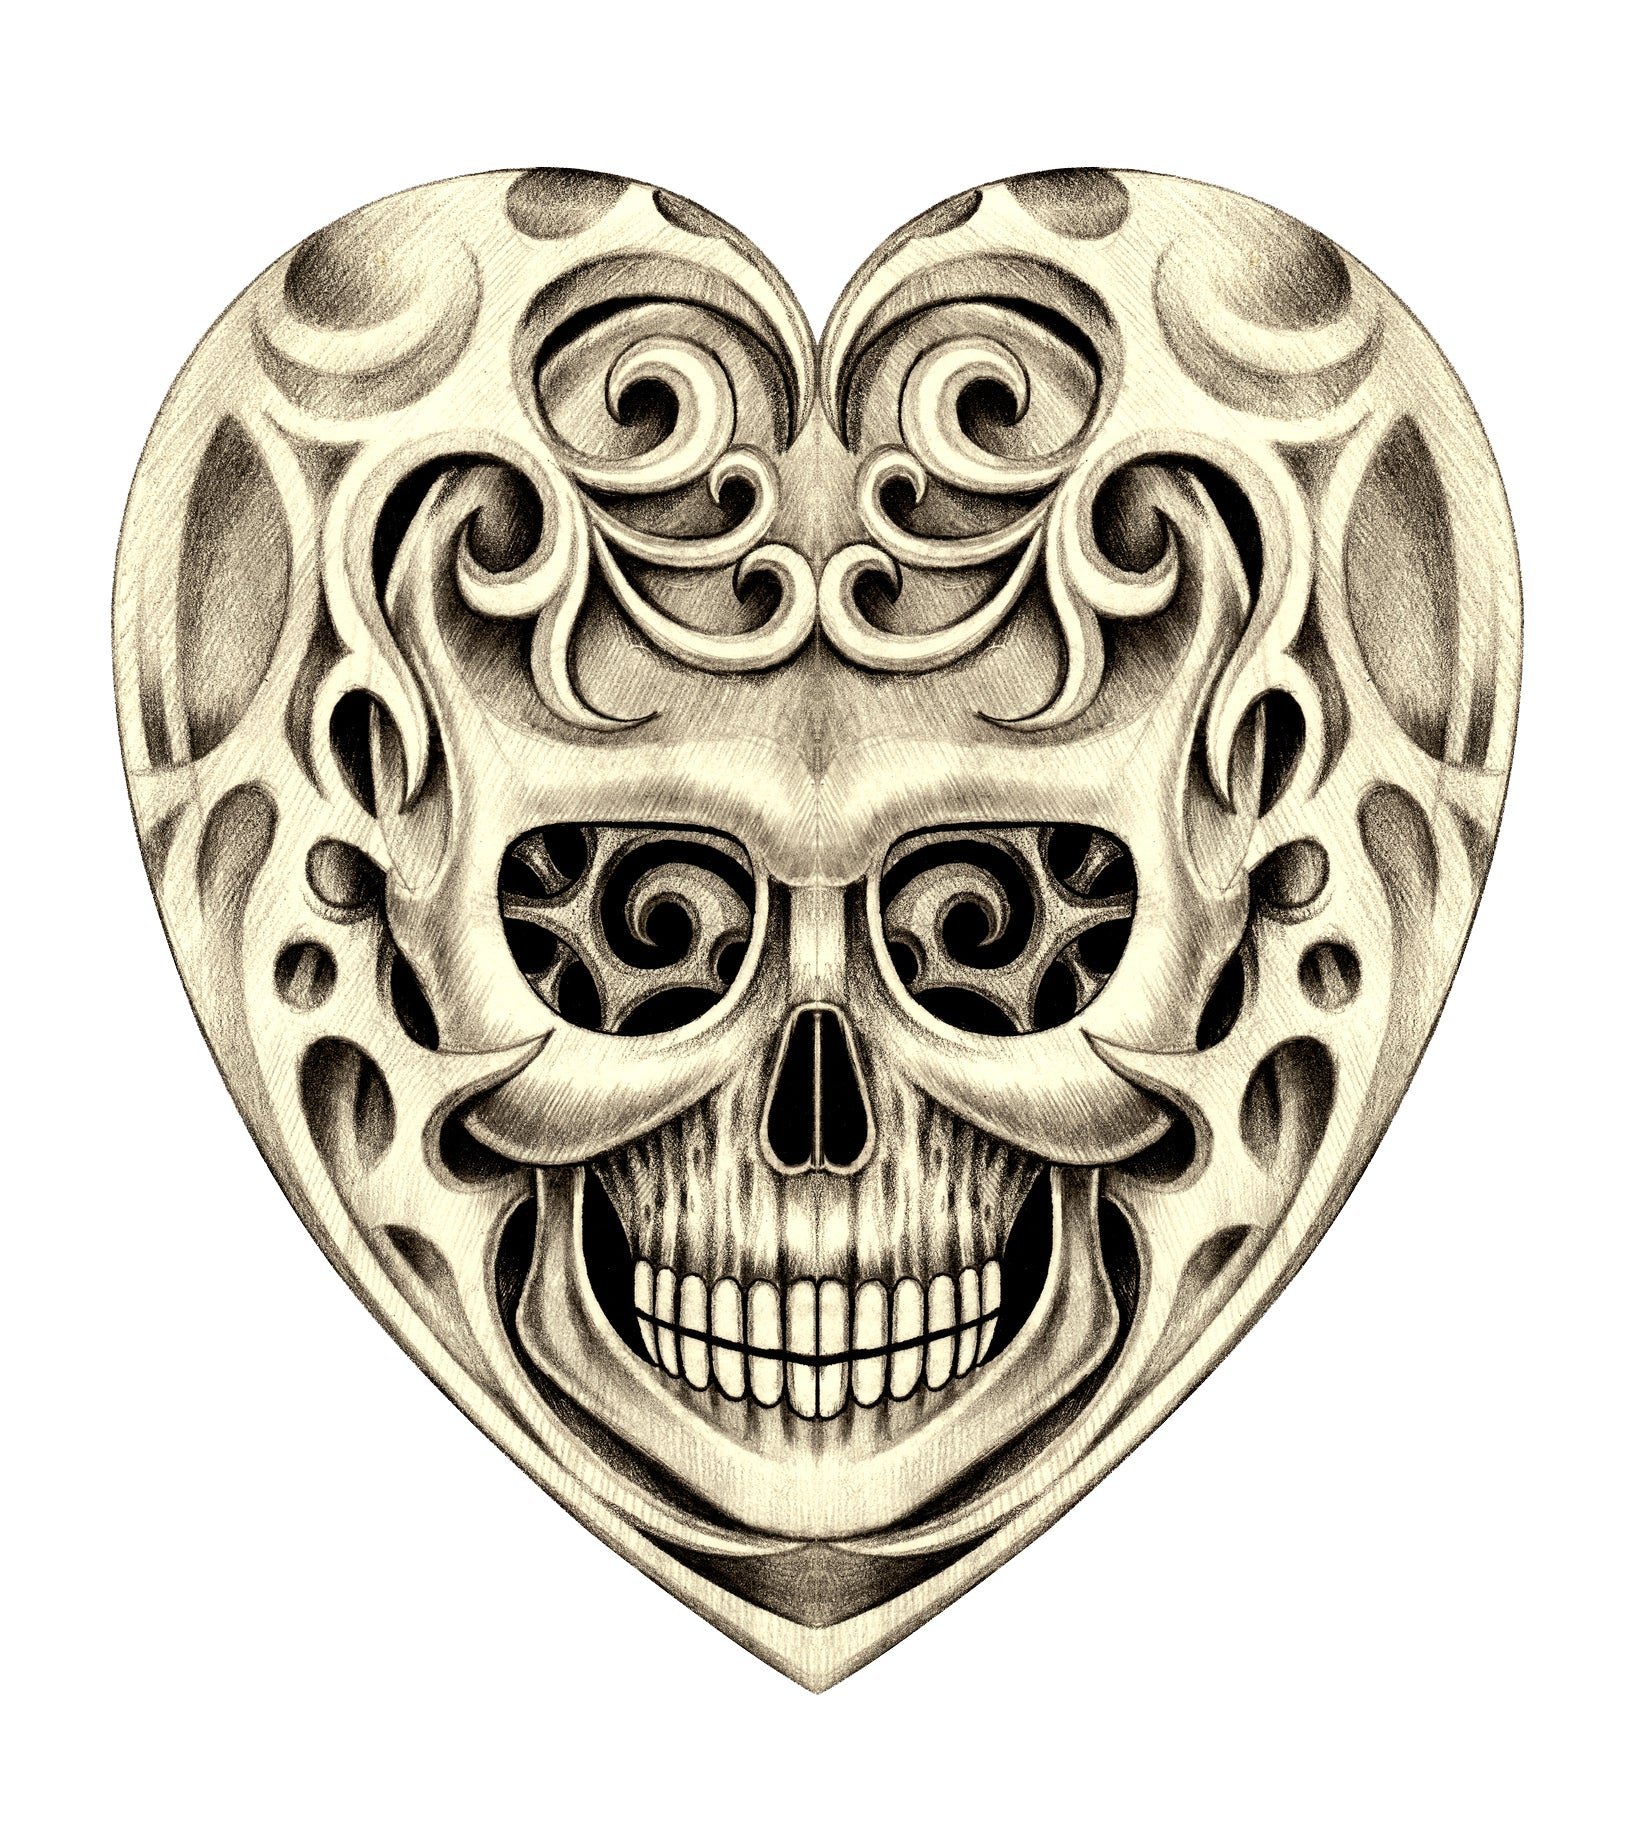 Pencil Sketch Skull in Swirl Stone Heart Vinyl Decal Sticker